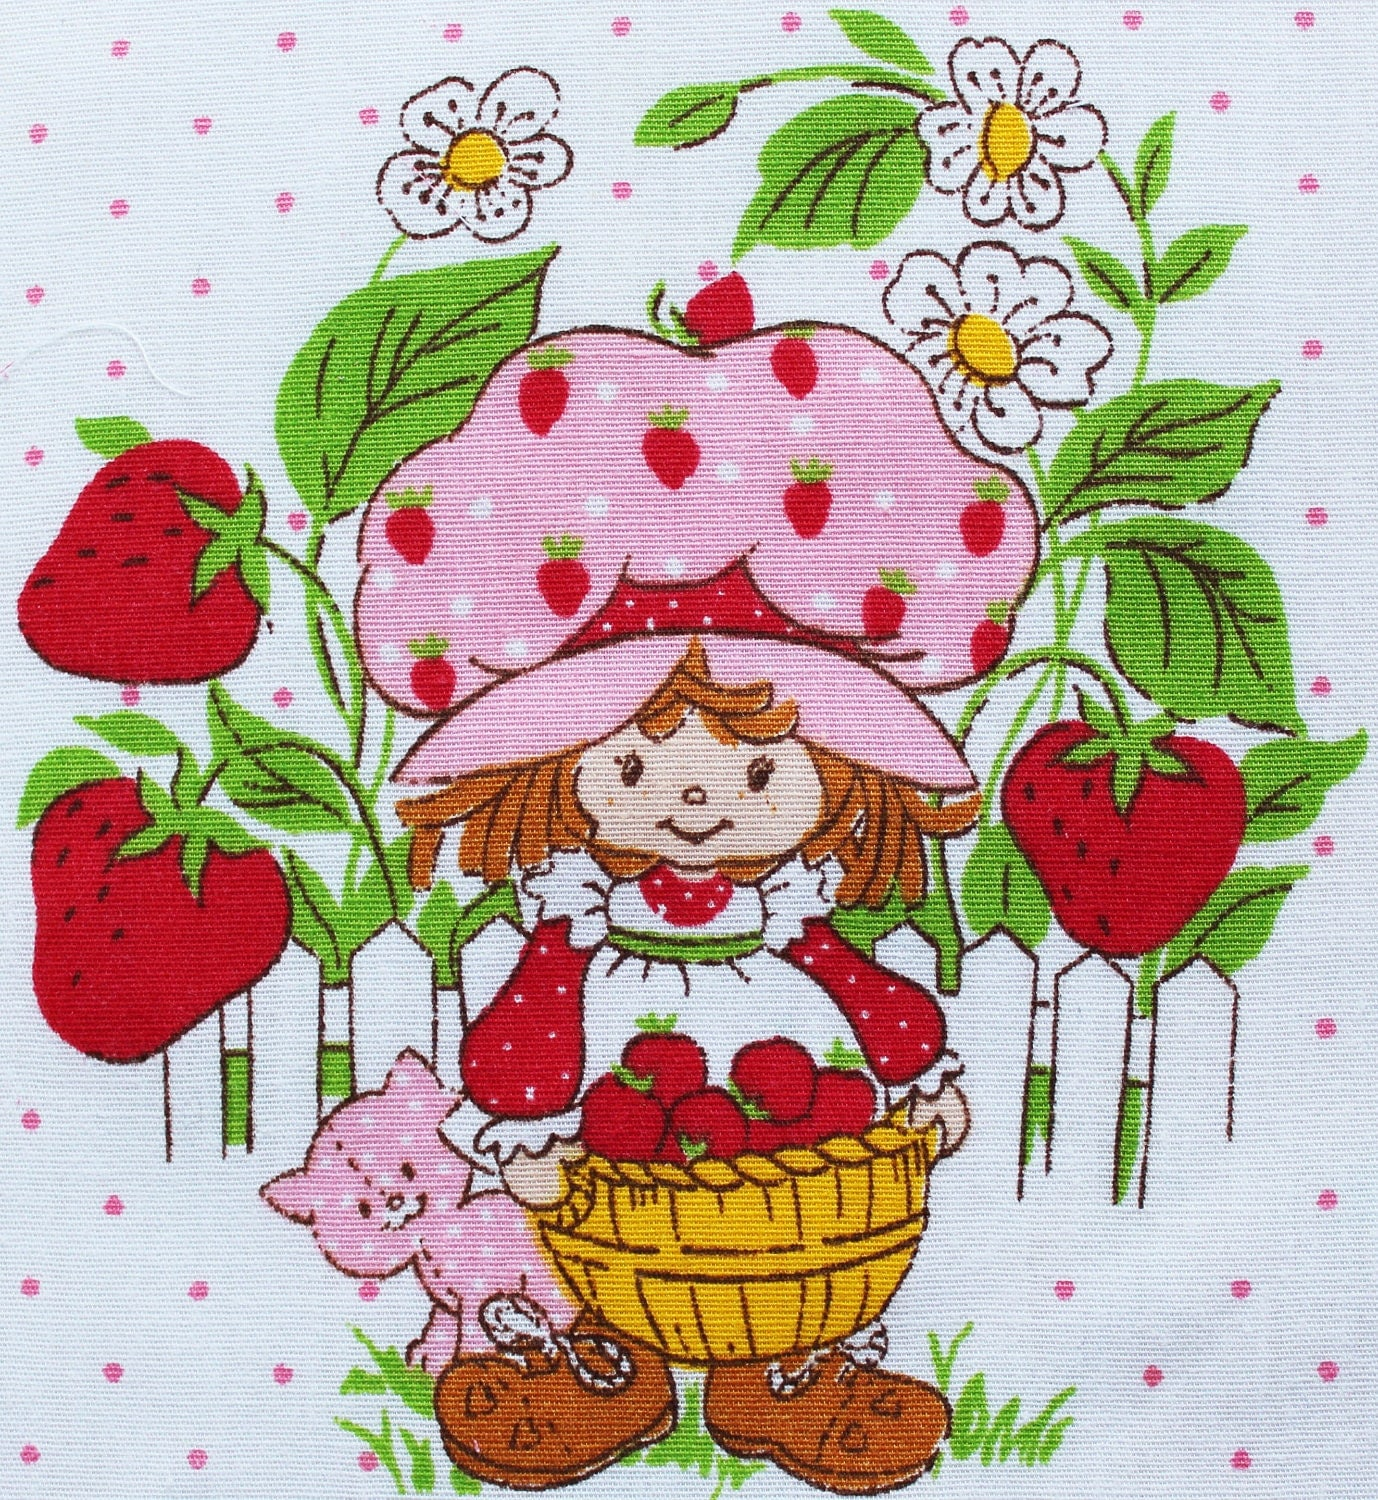 Vintage Strawberry Shortcake Hexagon Fabric Piece by papagostudio